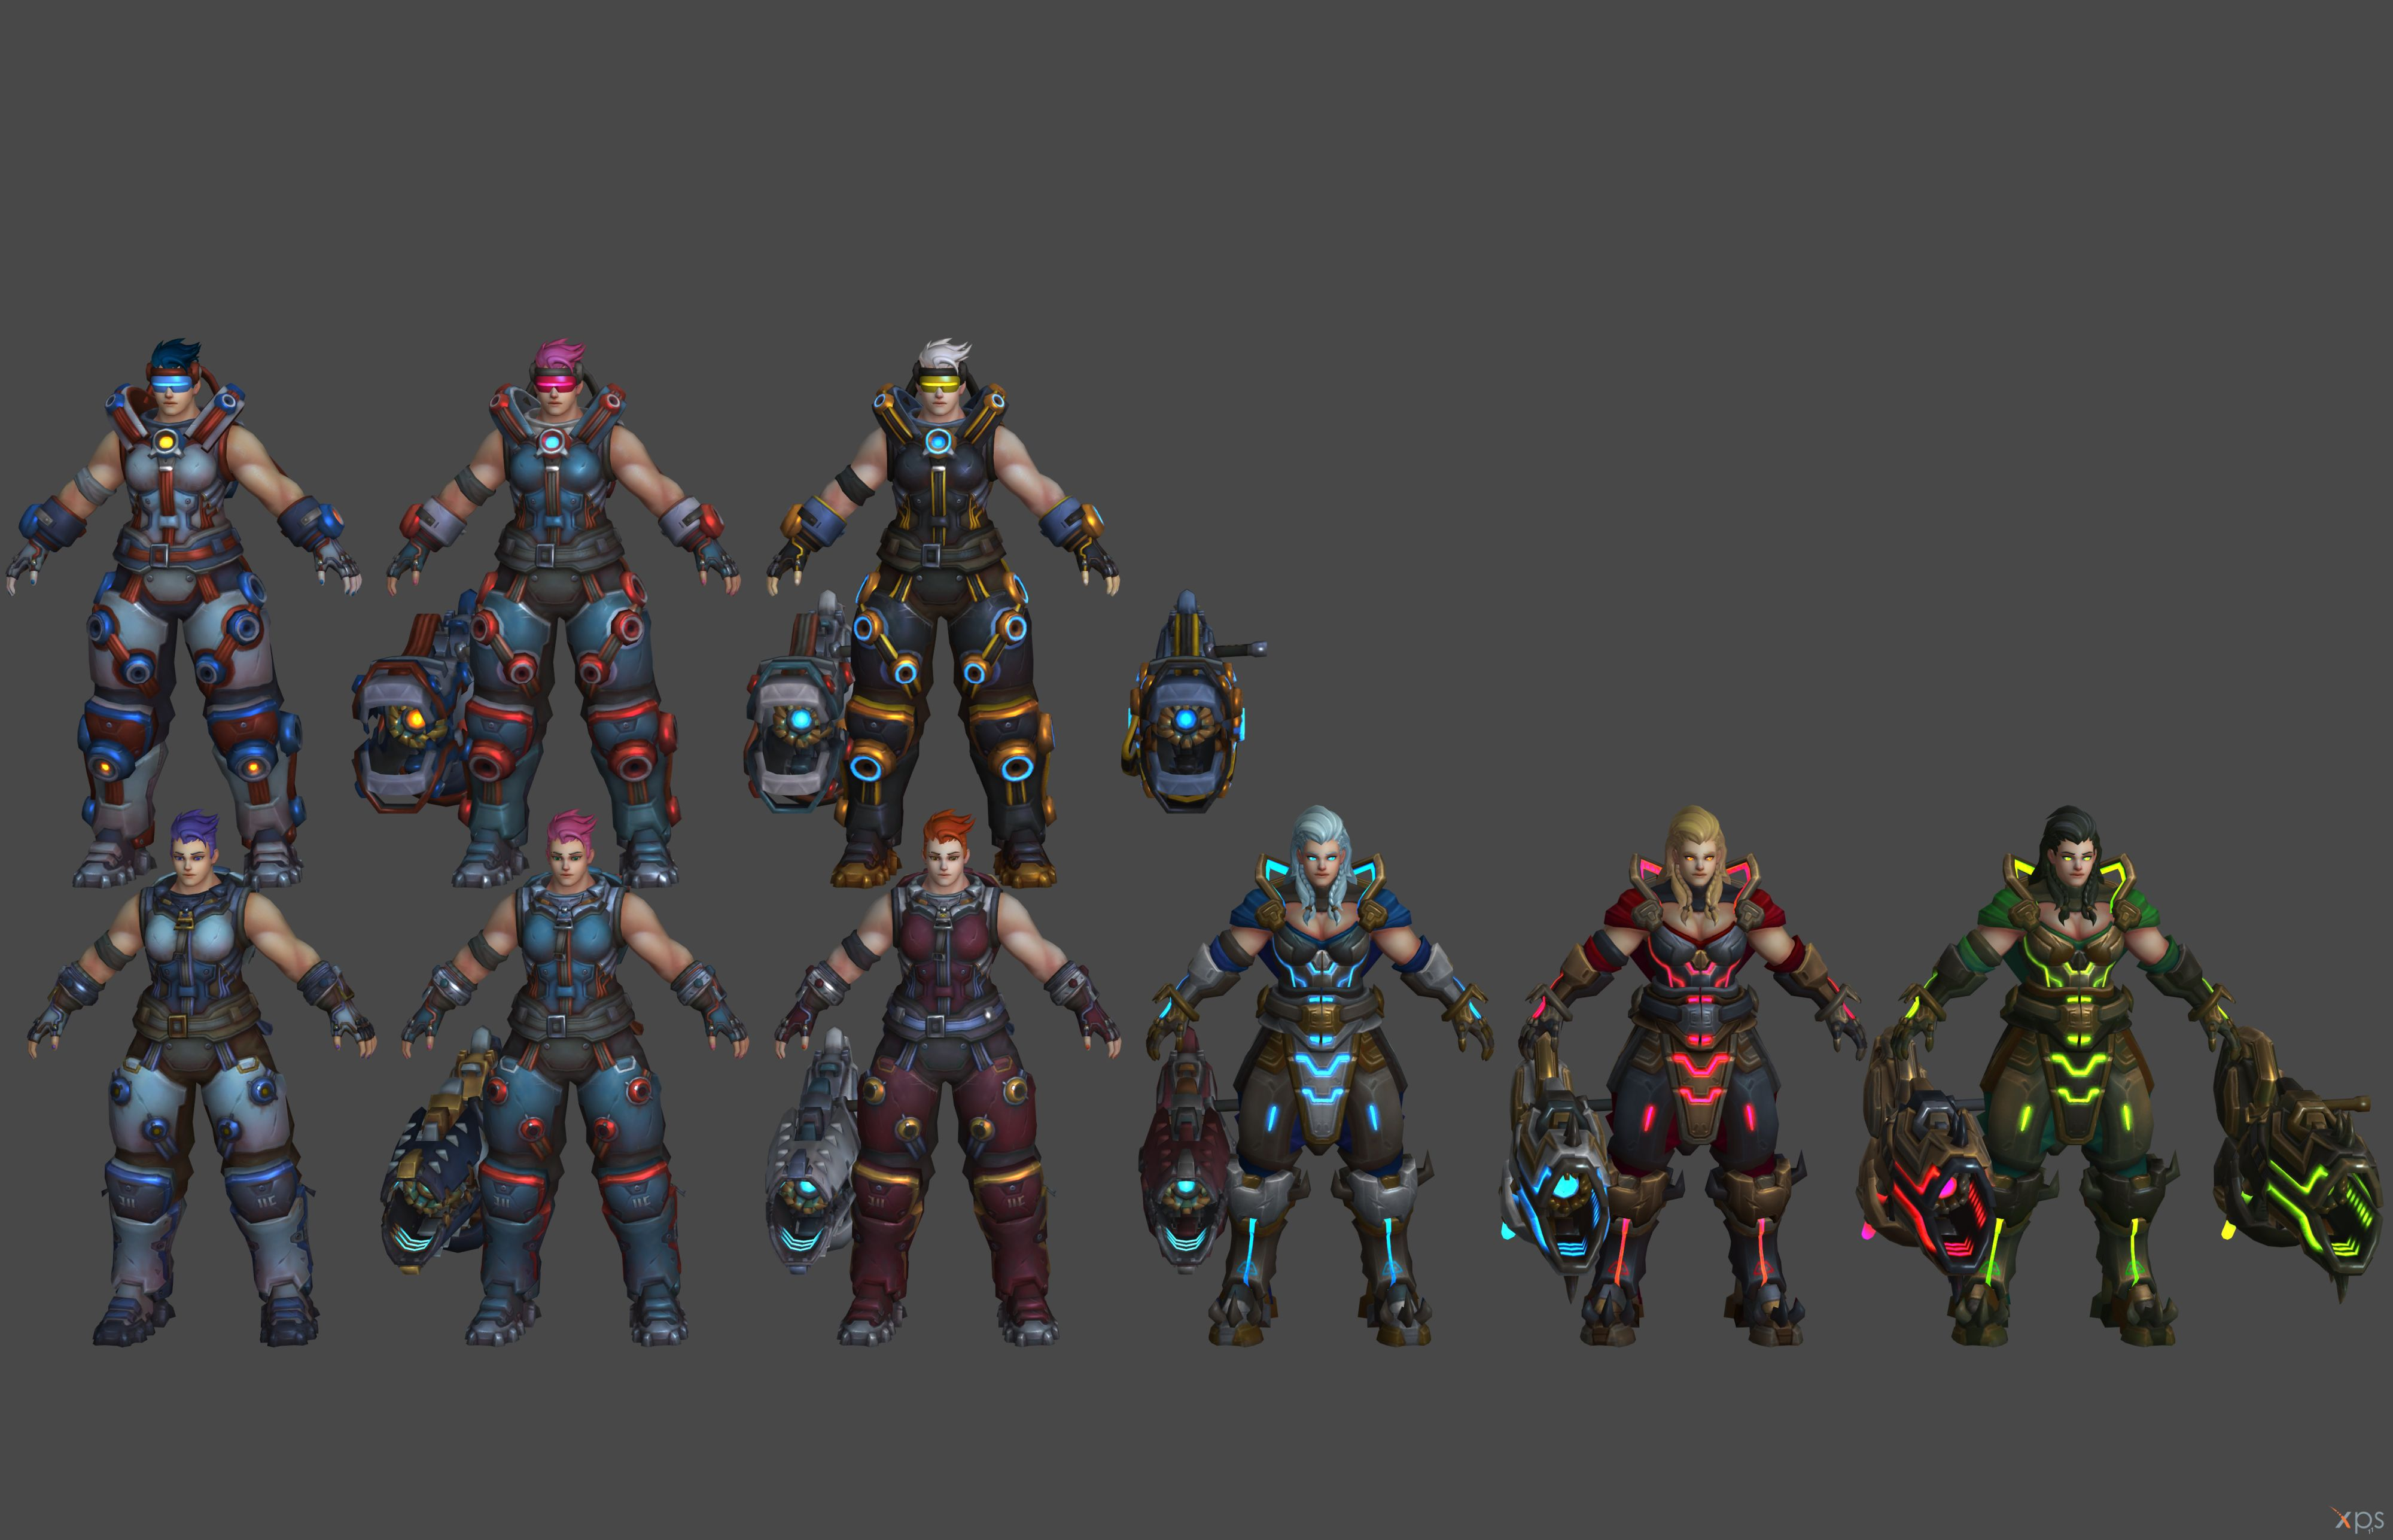 Heroes Of The Storm Zarya 2 0 Xps Only By Lezisell On Deviantart 2,224 likes · 15 talking about this. heroes of the storm zarya 2 0 xps only